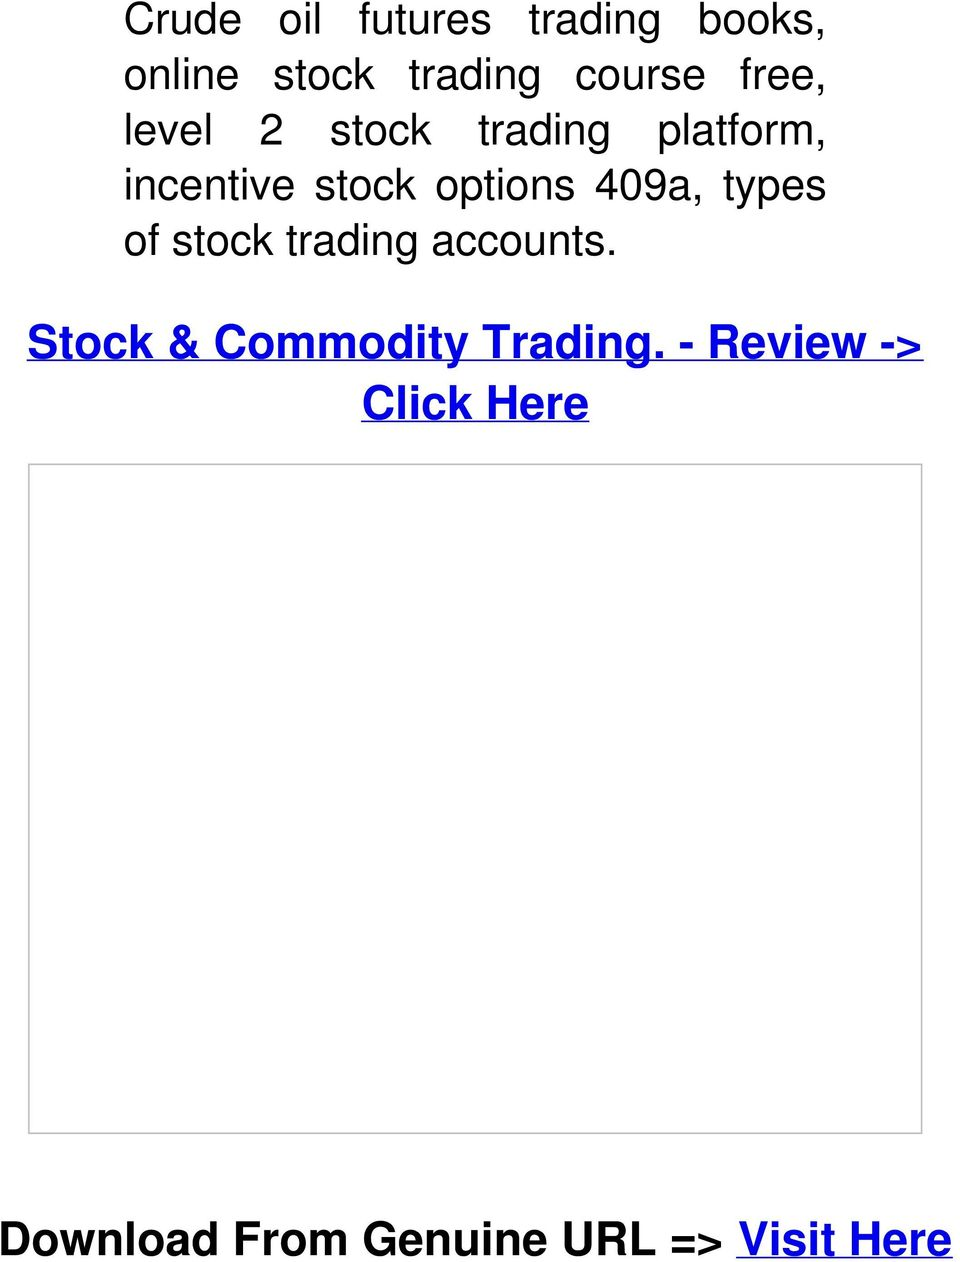 409a, types of stock trading accounts.